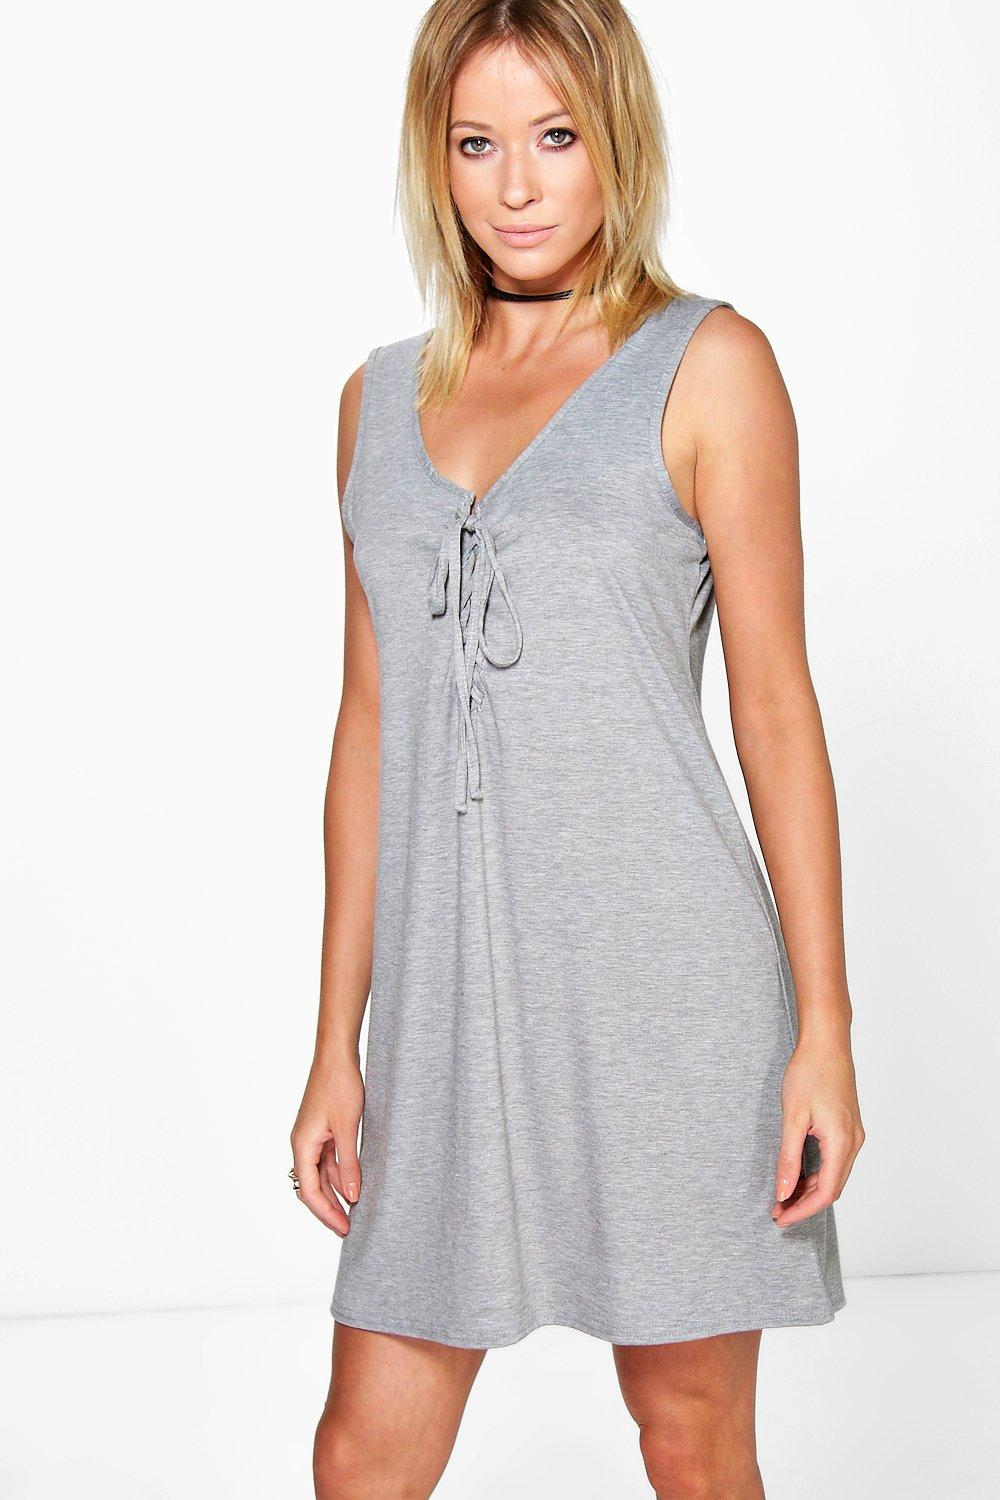 Lace Up Sleeveless Bodycon Dress - grey Review thumbnail